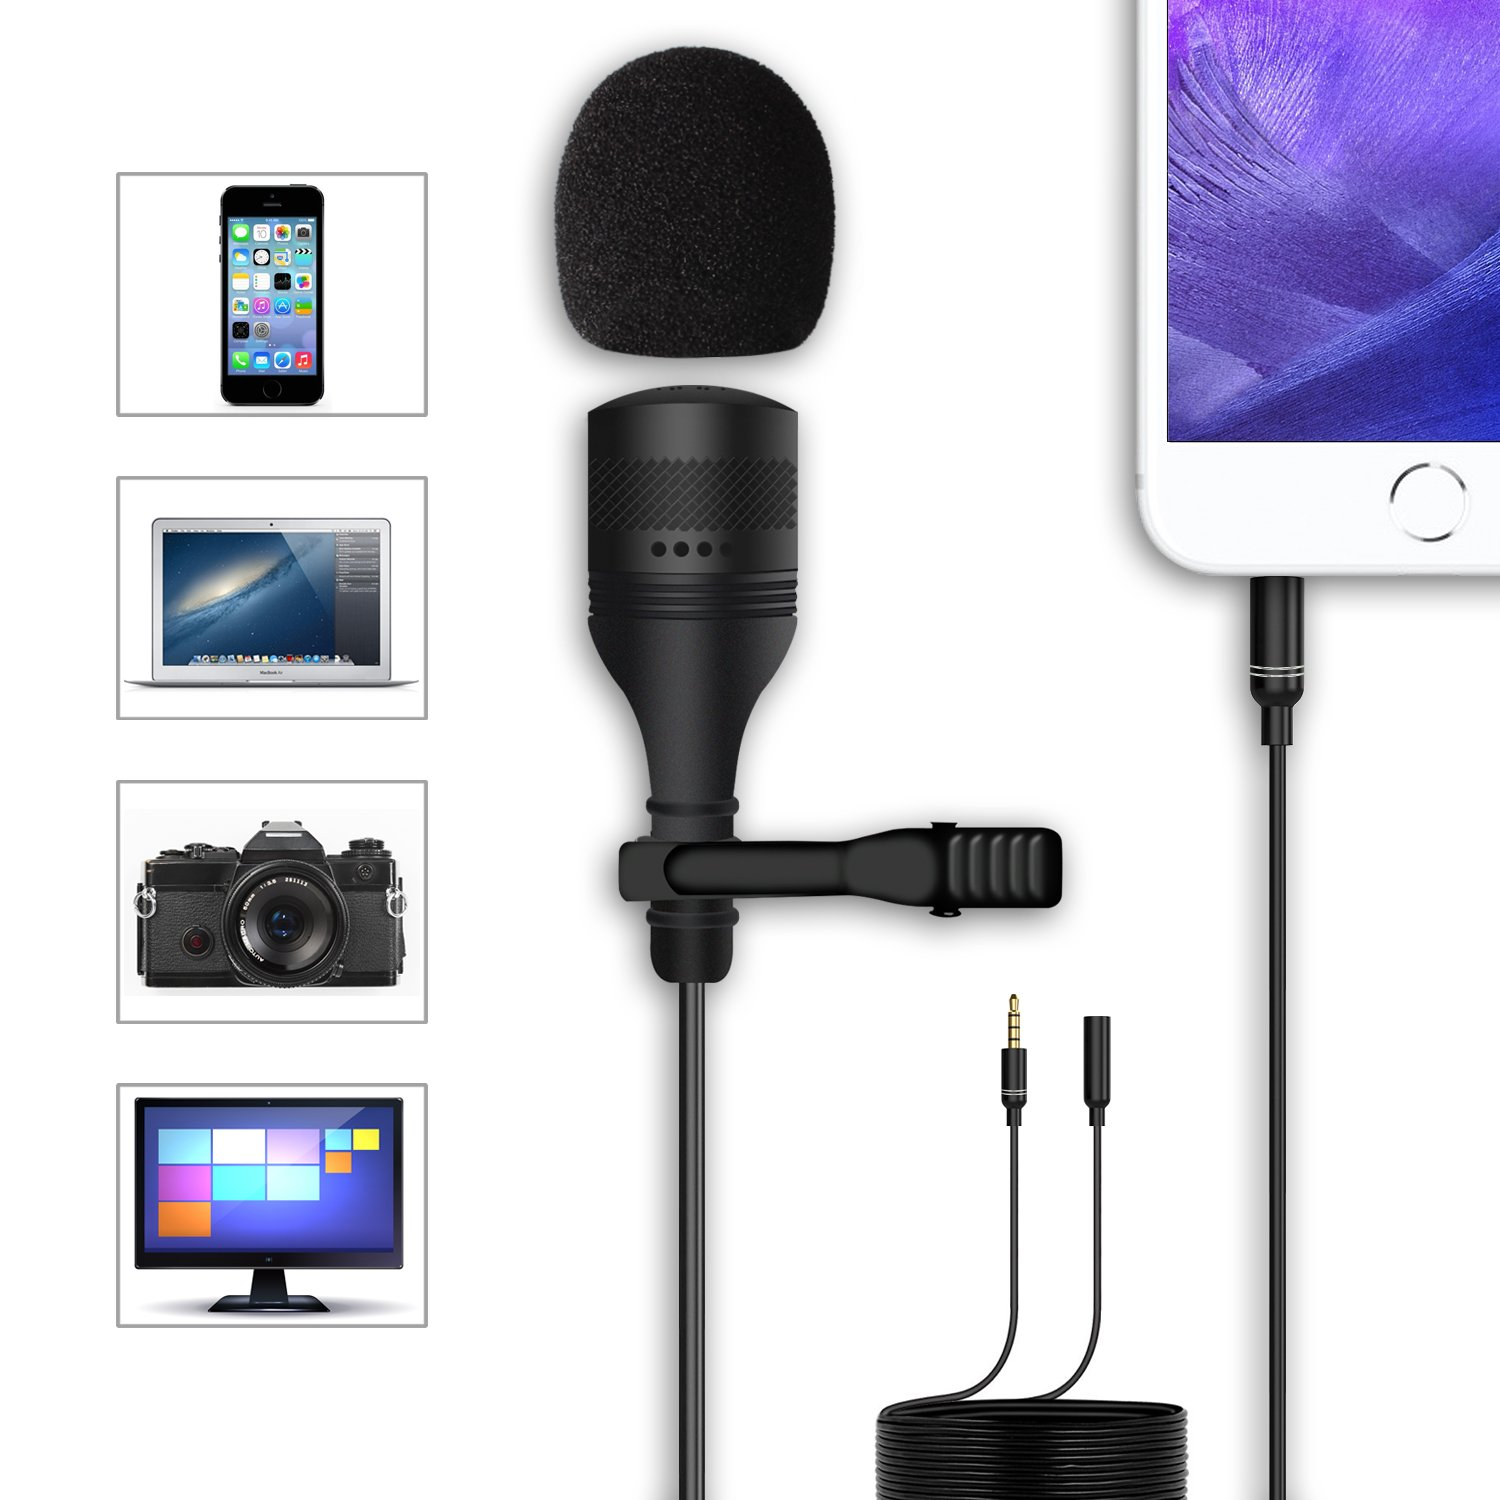 Anoak Professional Level Lavalier Microphone, Crystal Clear Lapel Mic for iPhone, Smartphone/DSLR Camera/Laptop, PC Computer/Recorder - Noise Canceling